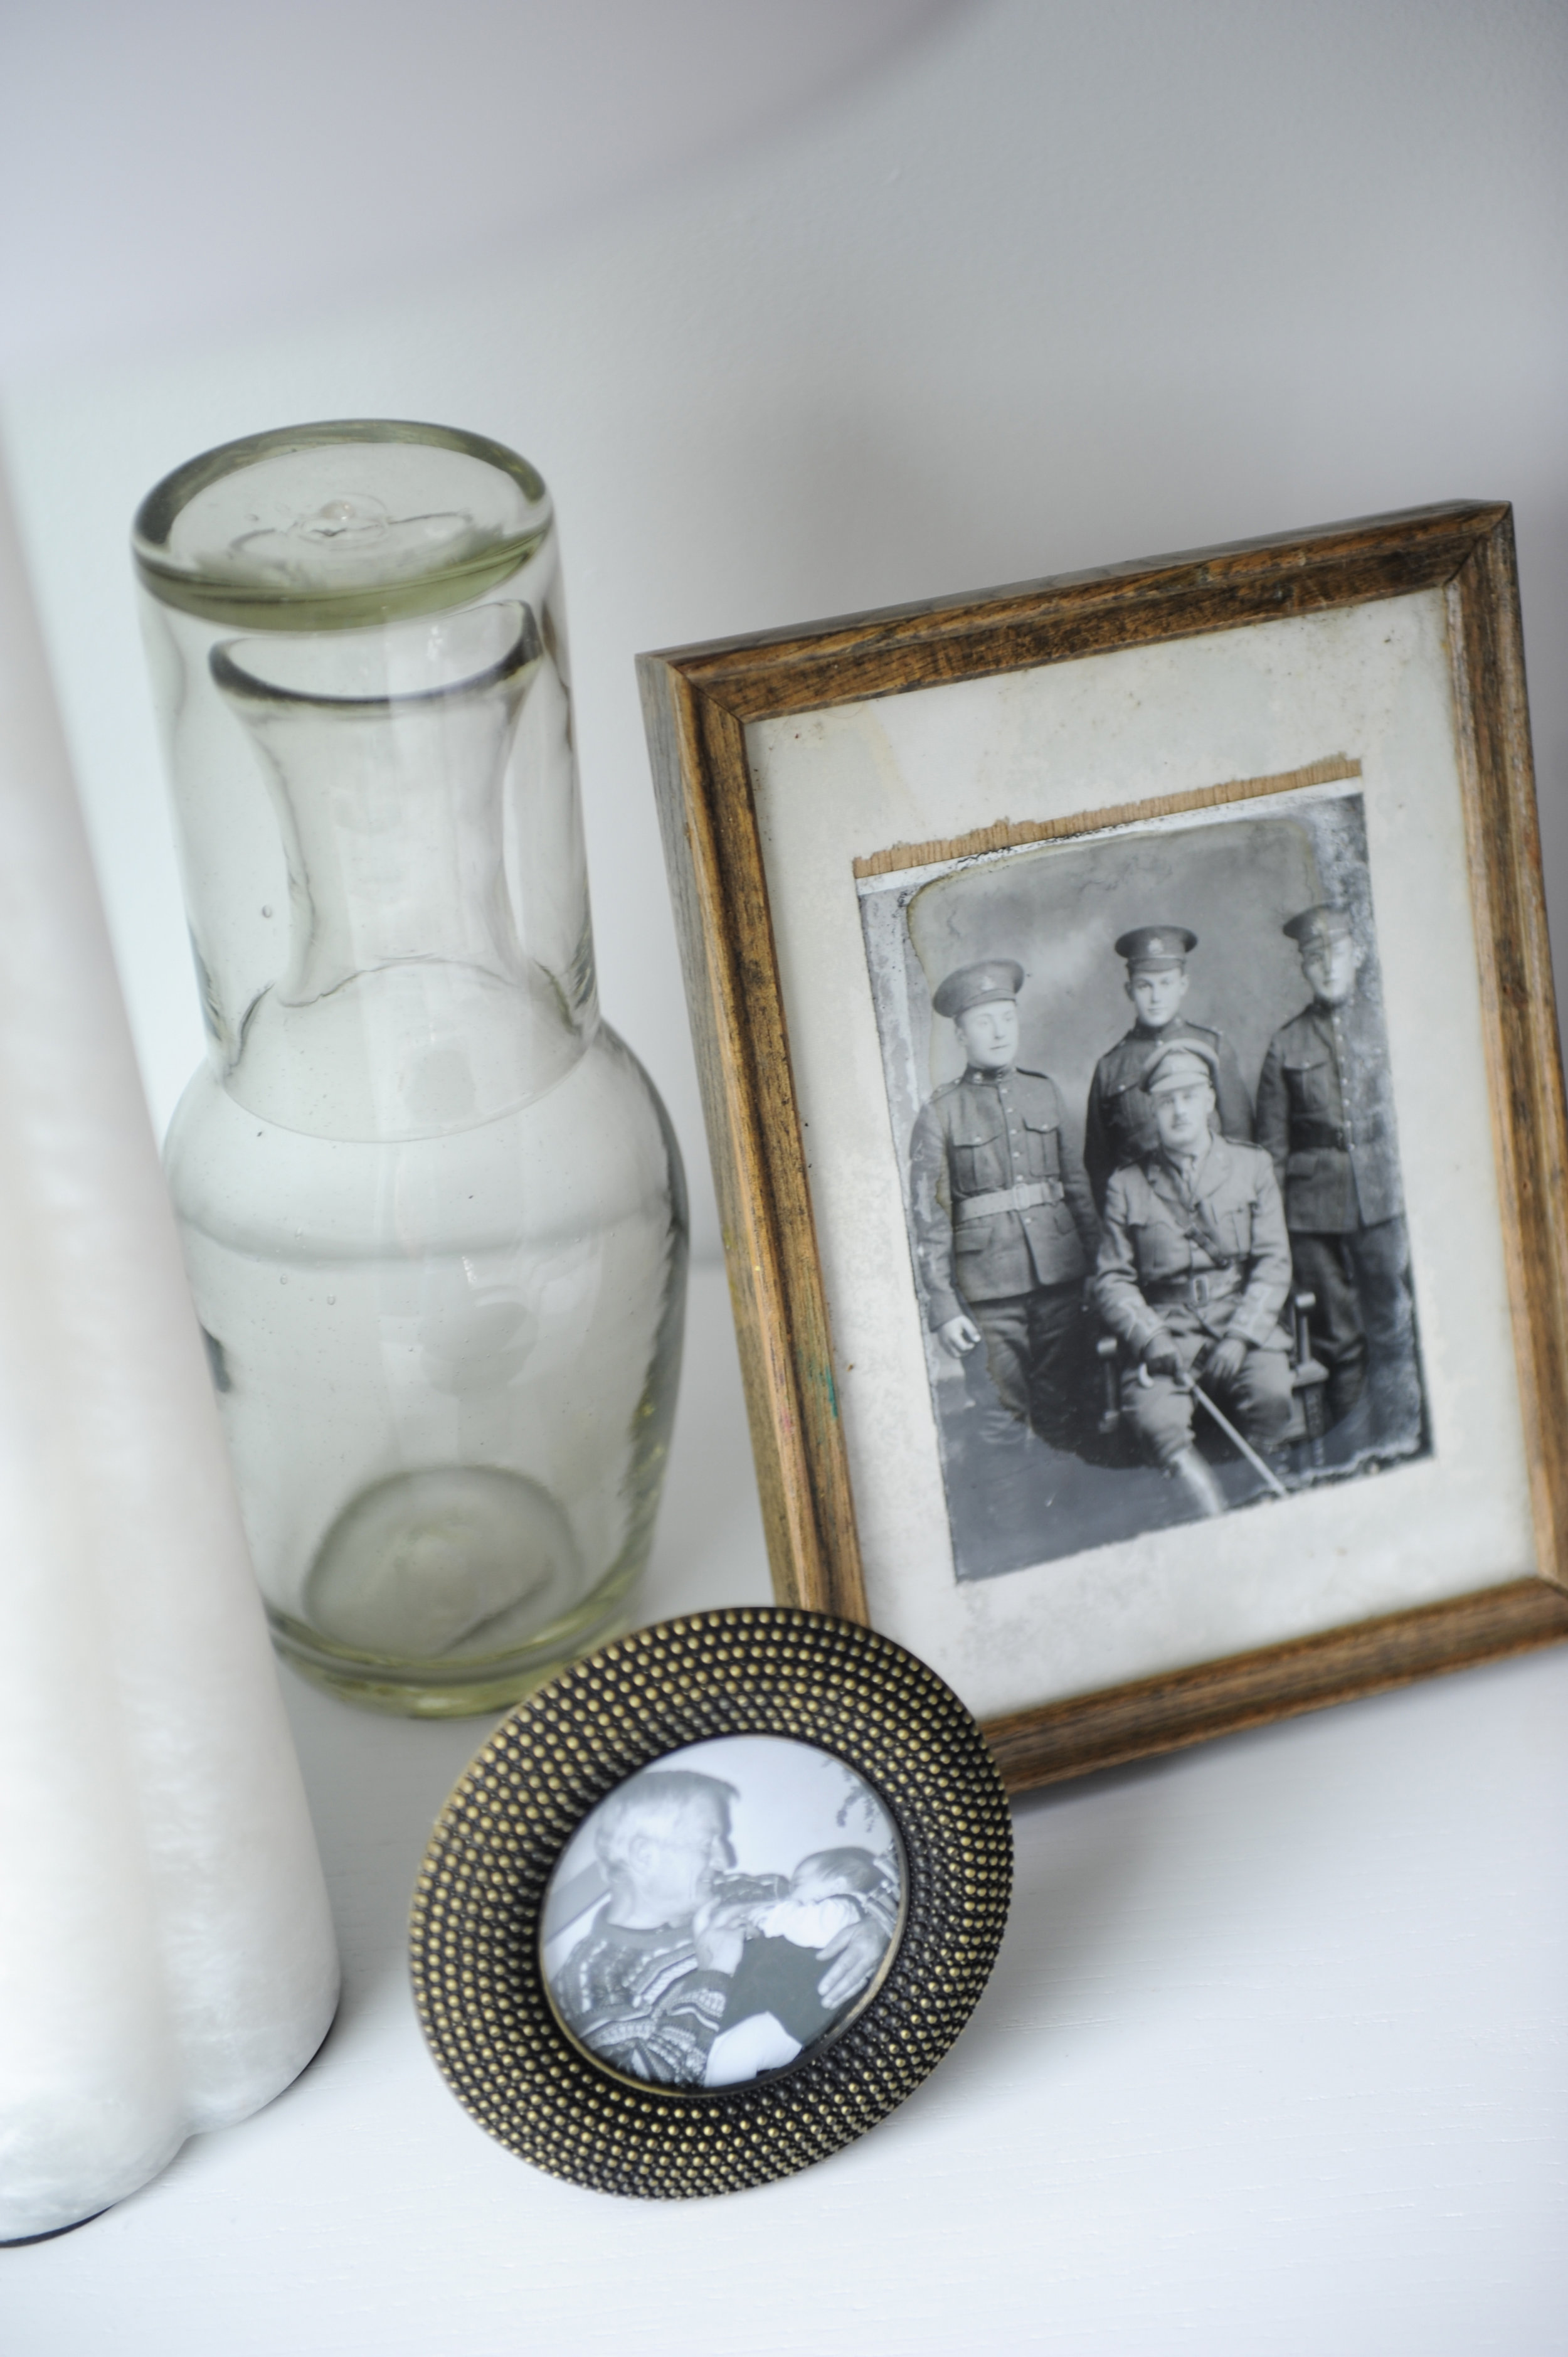 Old black and white photos sit in decorative frames next to a glass vase.